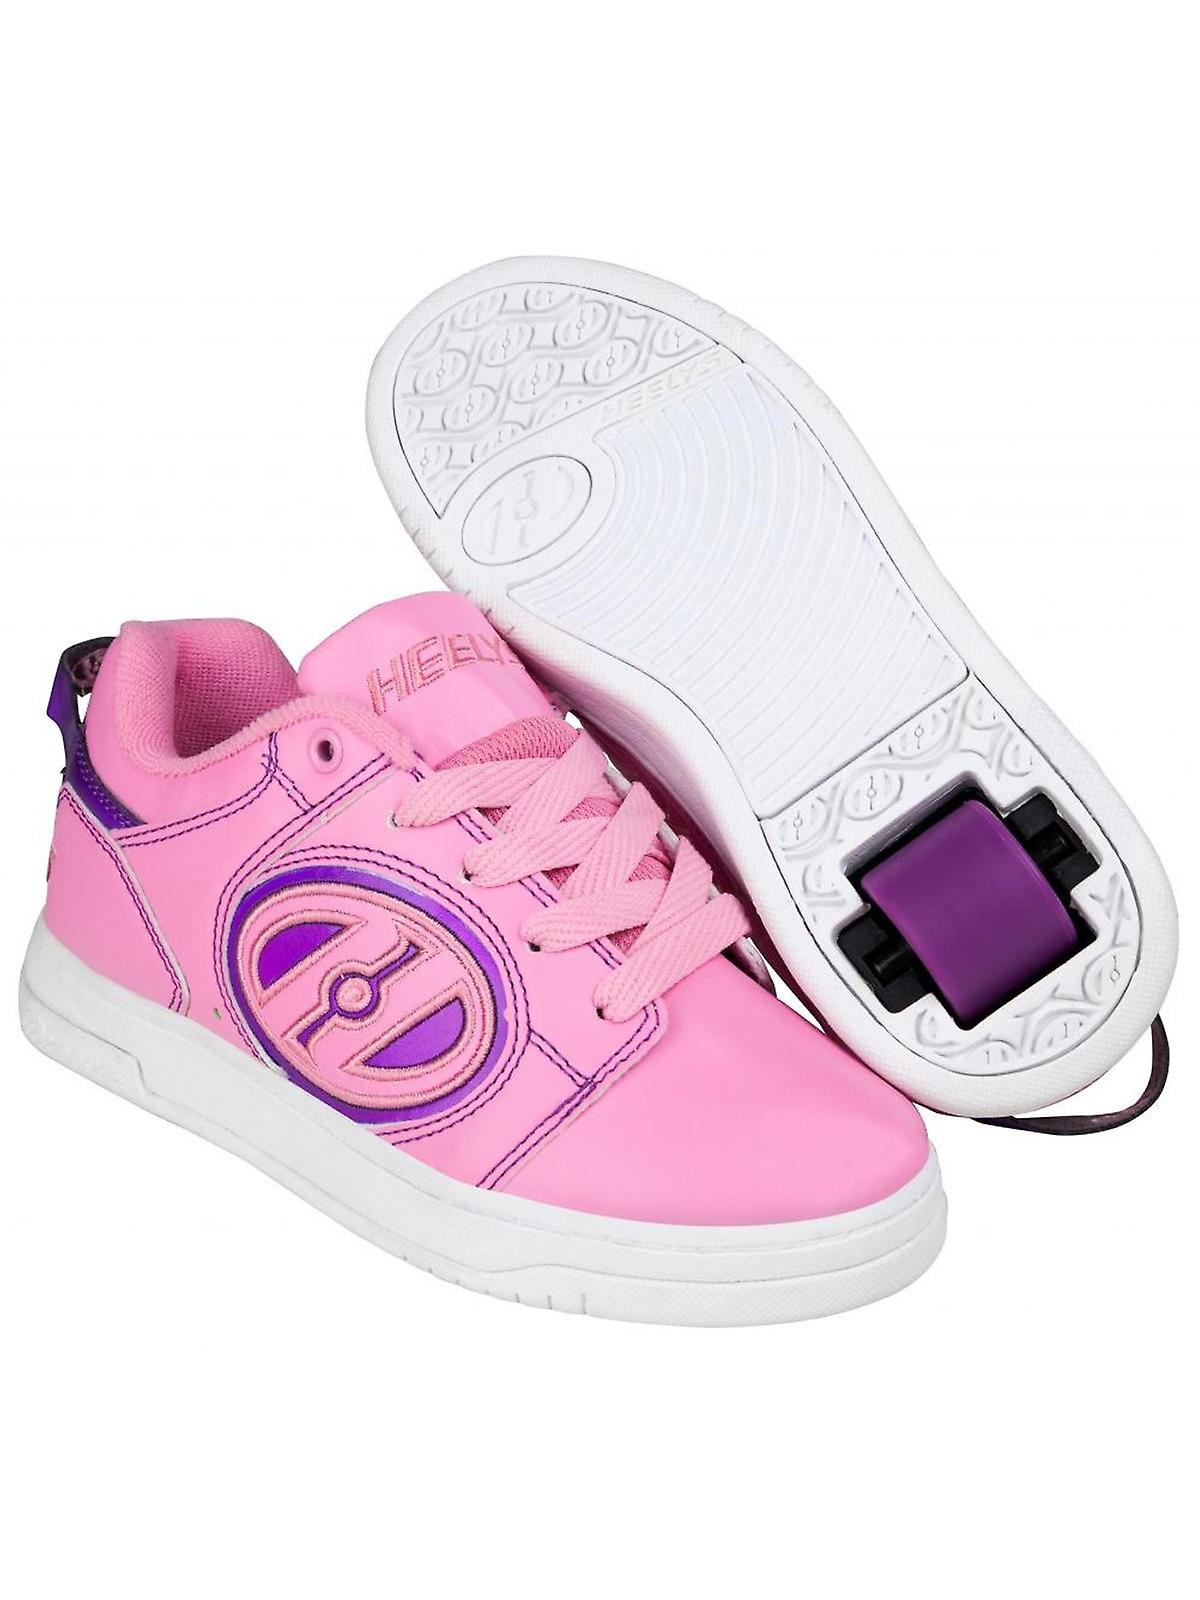 low priced 36874 00fcb Heelys Light Pink-Purple Voyager Girls One Wheel Shoe